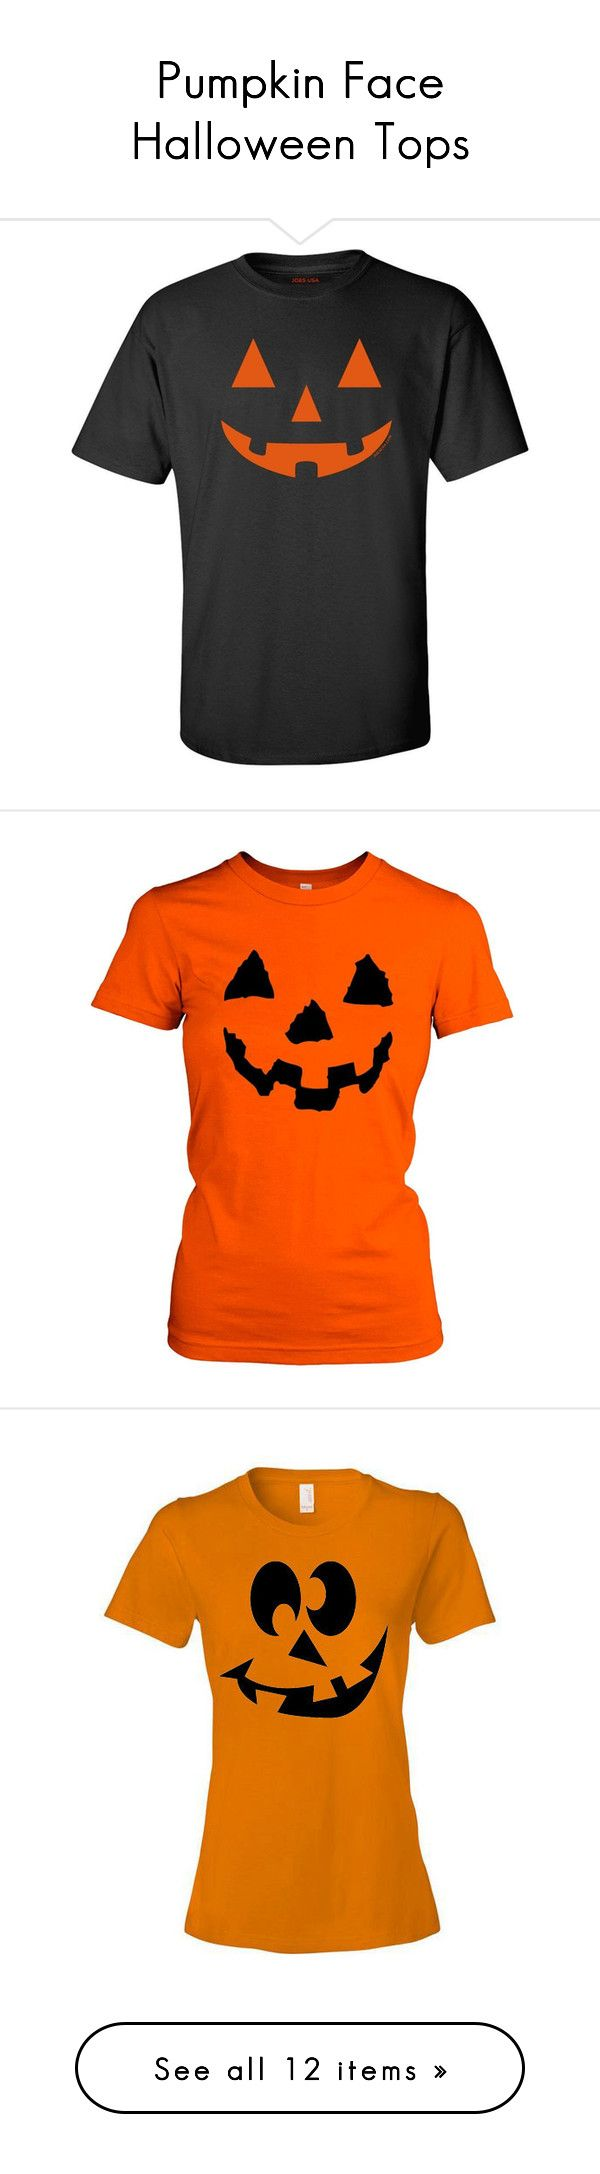 """""""Pumpkin Face Halloween Tops"""" by chathurika-gamage ❤ liked on Polyvore featuring costumes, pumpkin costumes, pumpkin halloween costume, tops, t-shirts, halloween, lullabies, black, women's clothing и slim fit t shirts"""